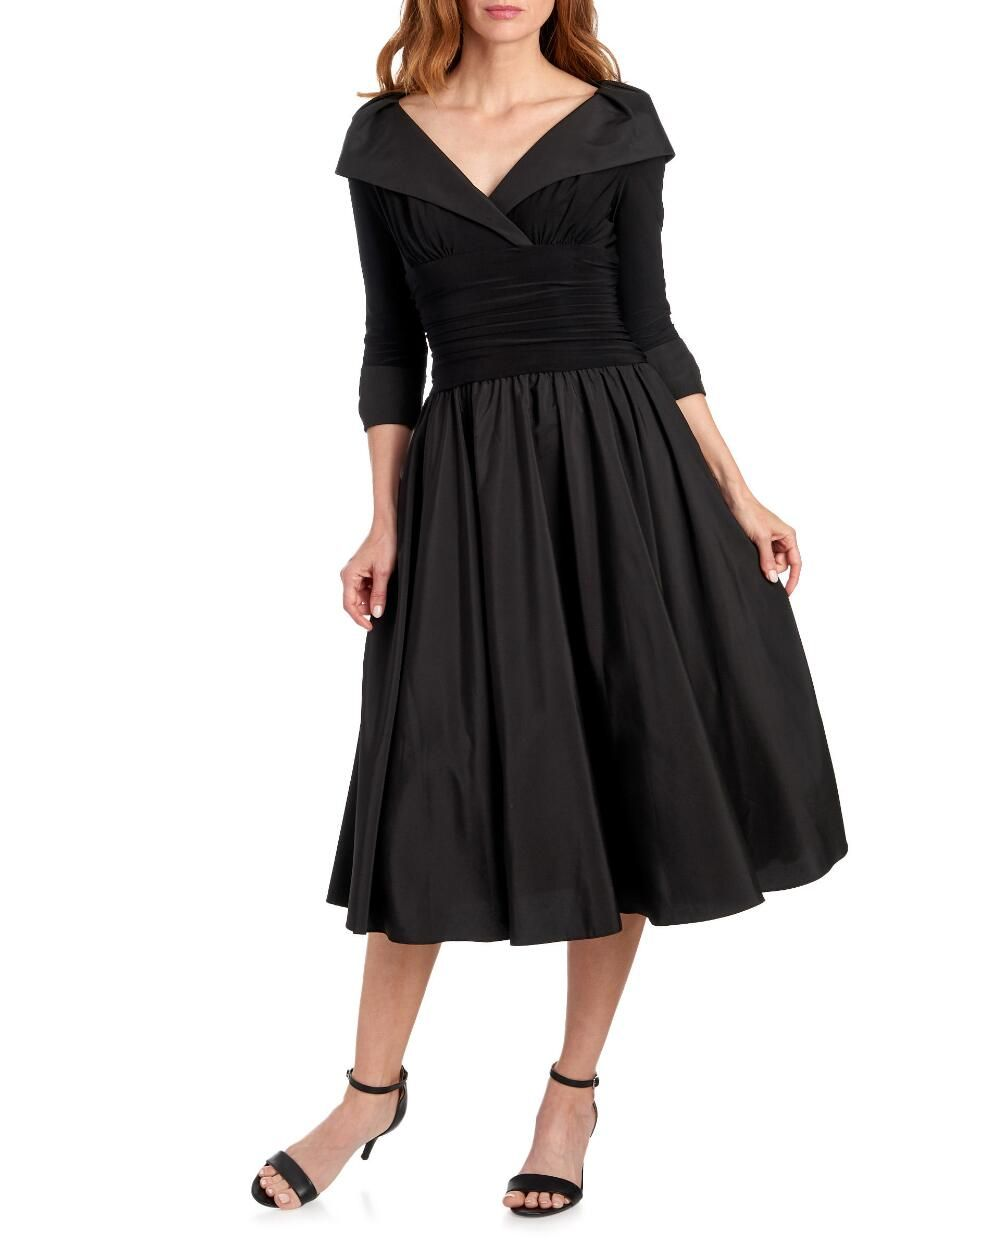 adefa7fa658 Portrait Collar Party Dress-Evening   Formal-Shop by Occasion-Dresses